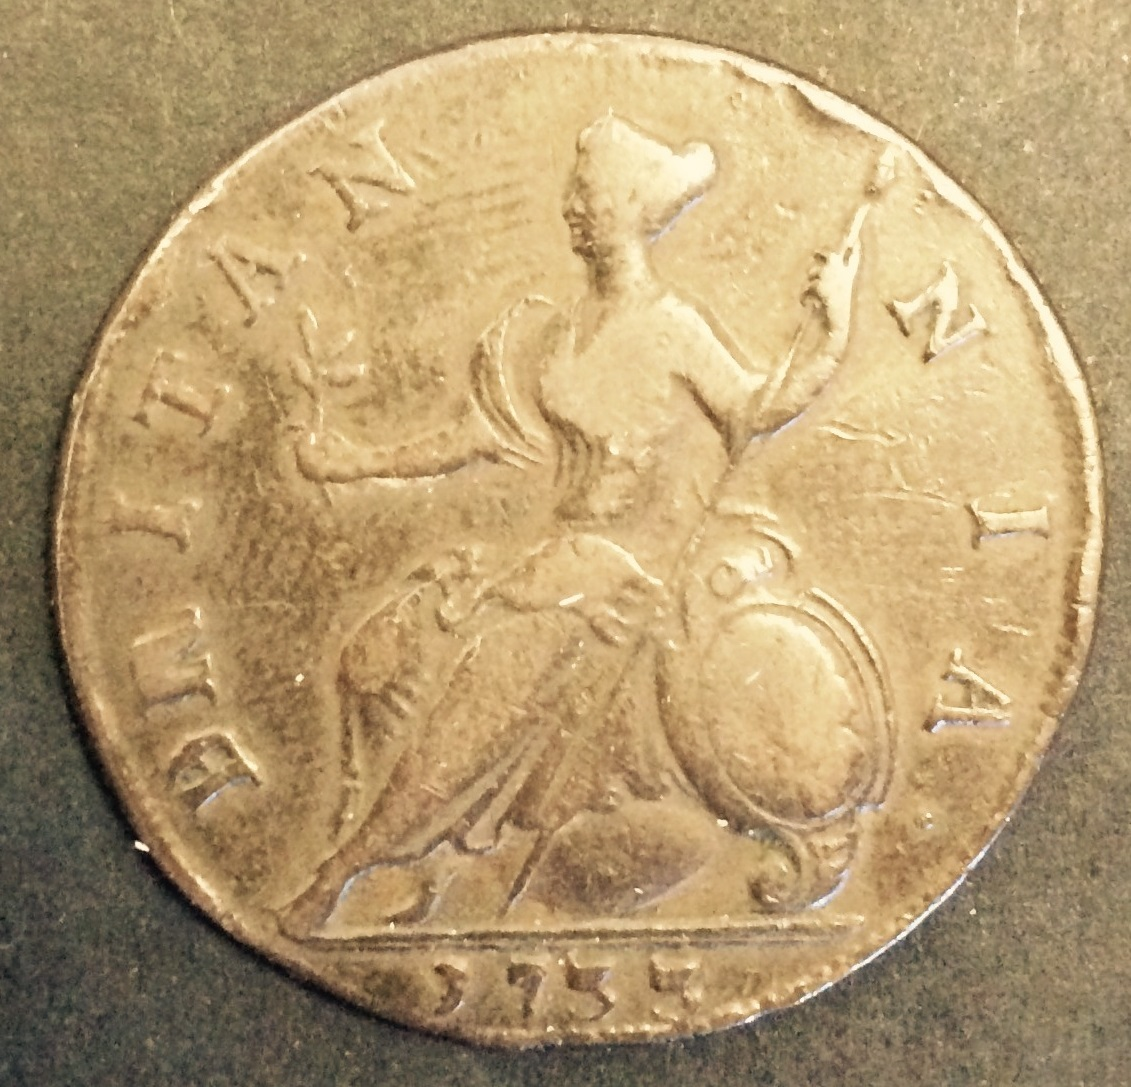 britannia early penny - Announcing: The return of Britannia to our coins